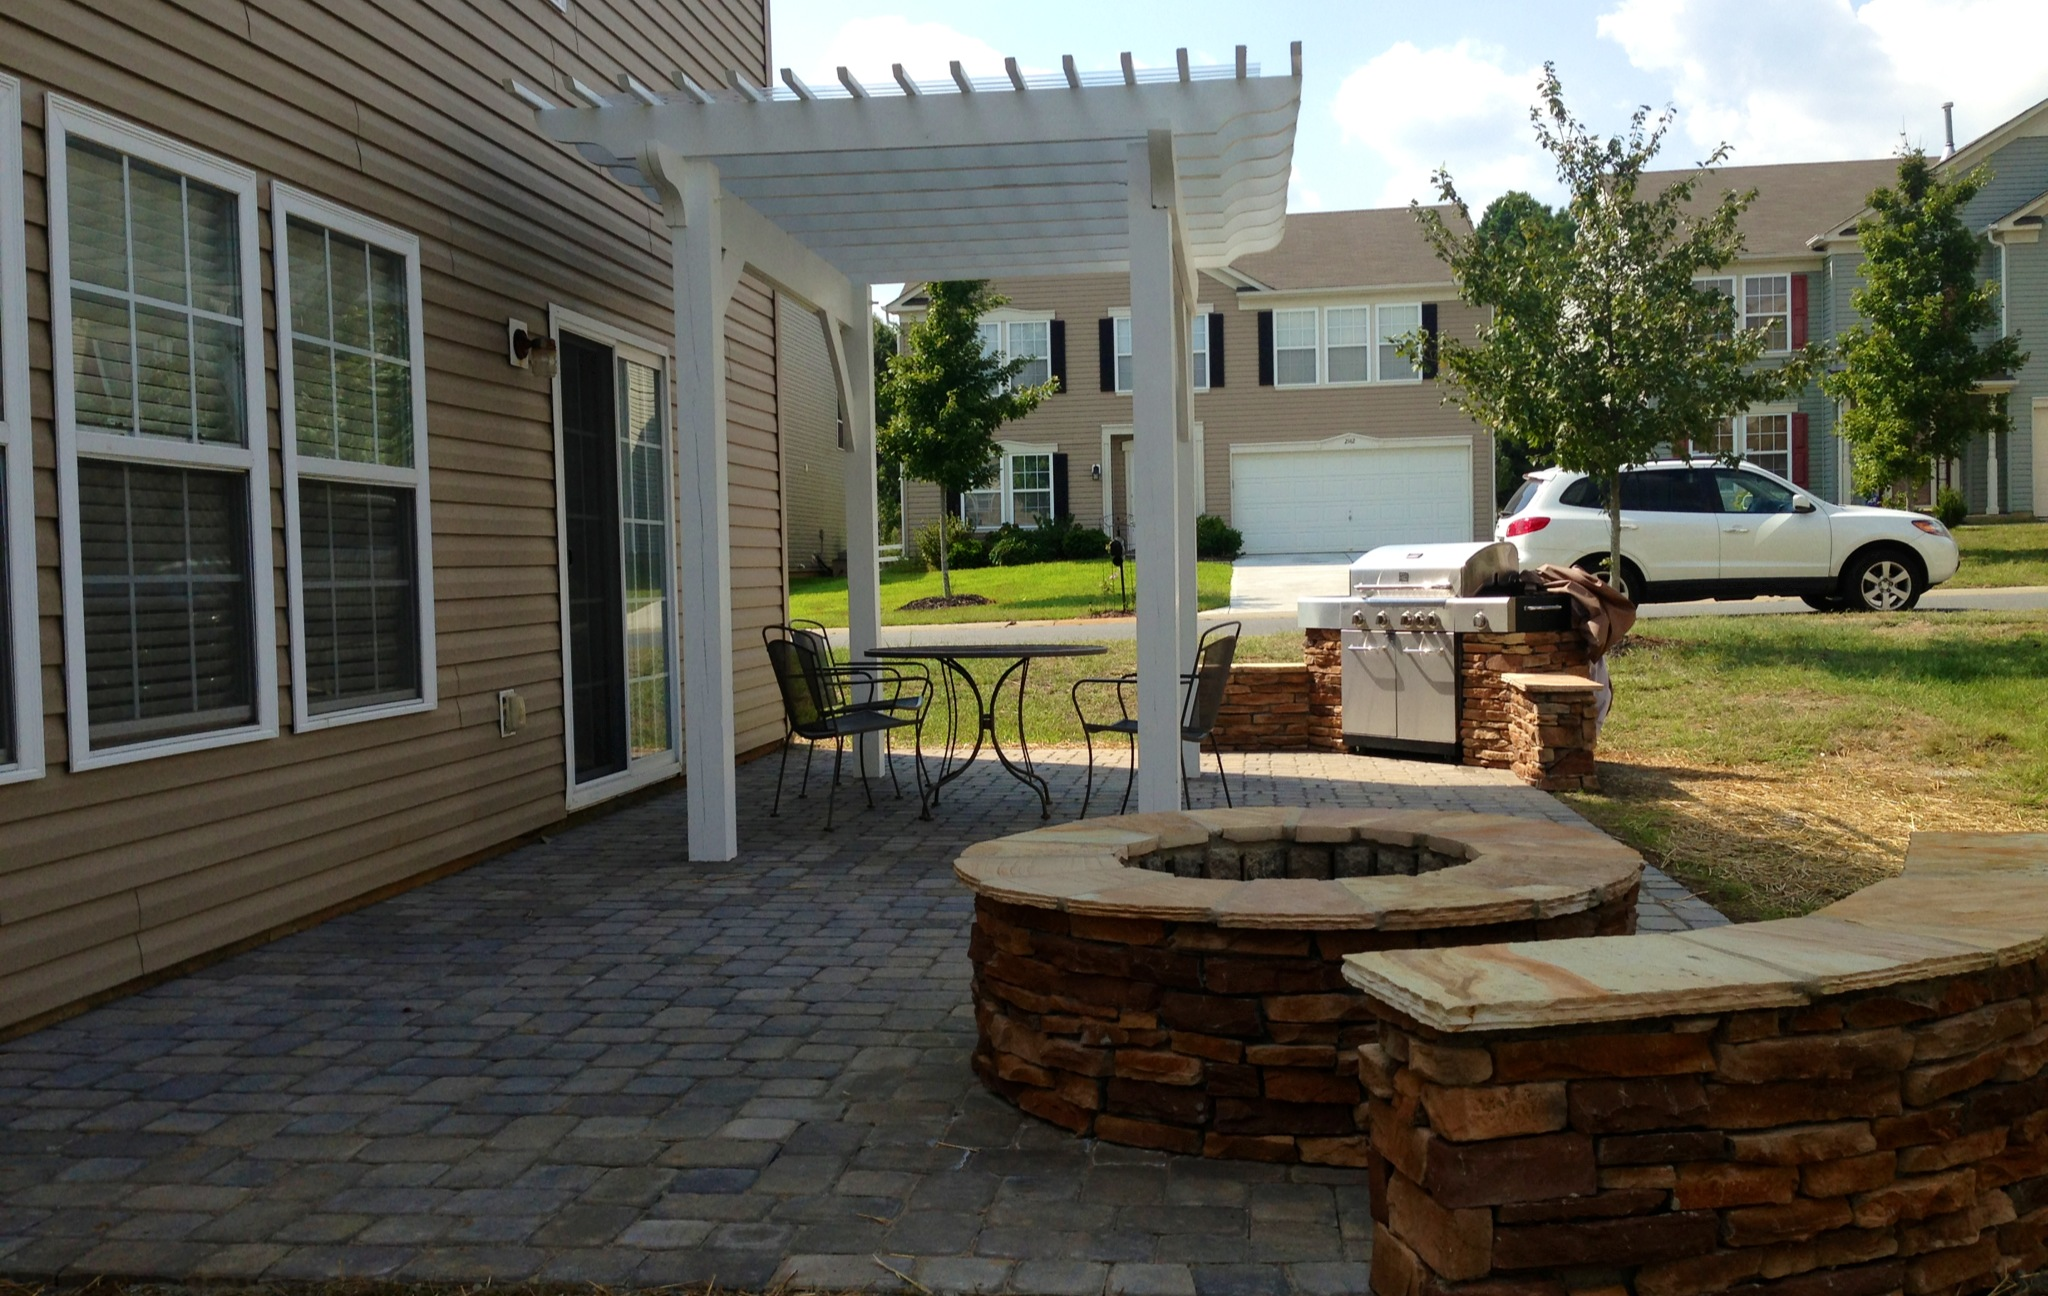 Pergola s make a great addition to any Raleigh deck or patio